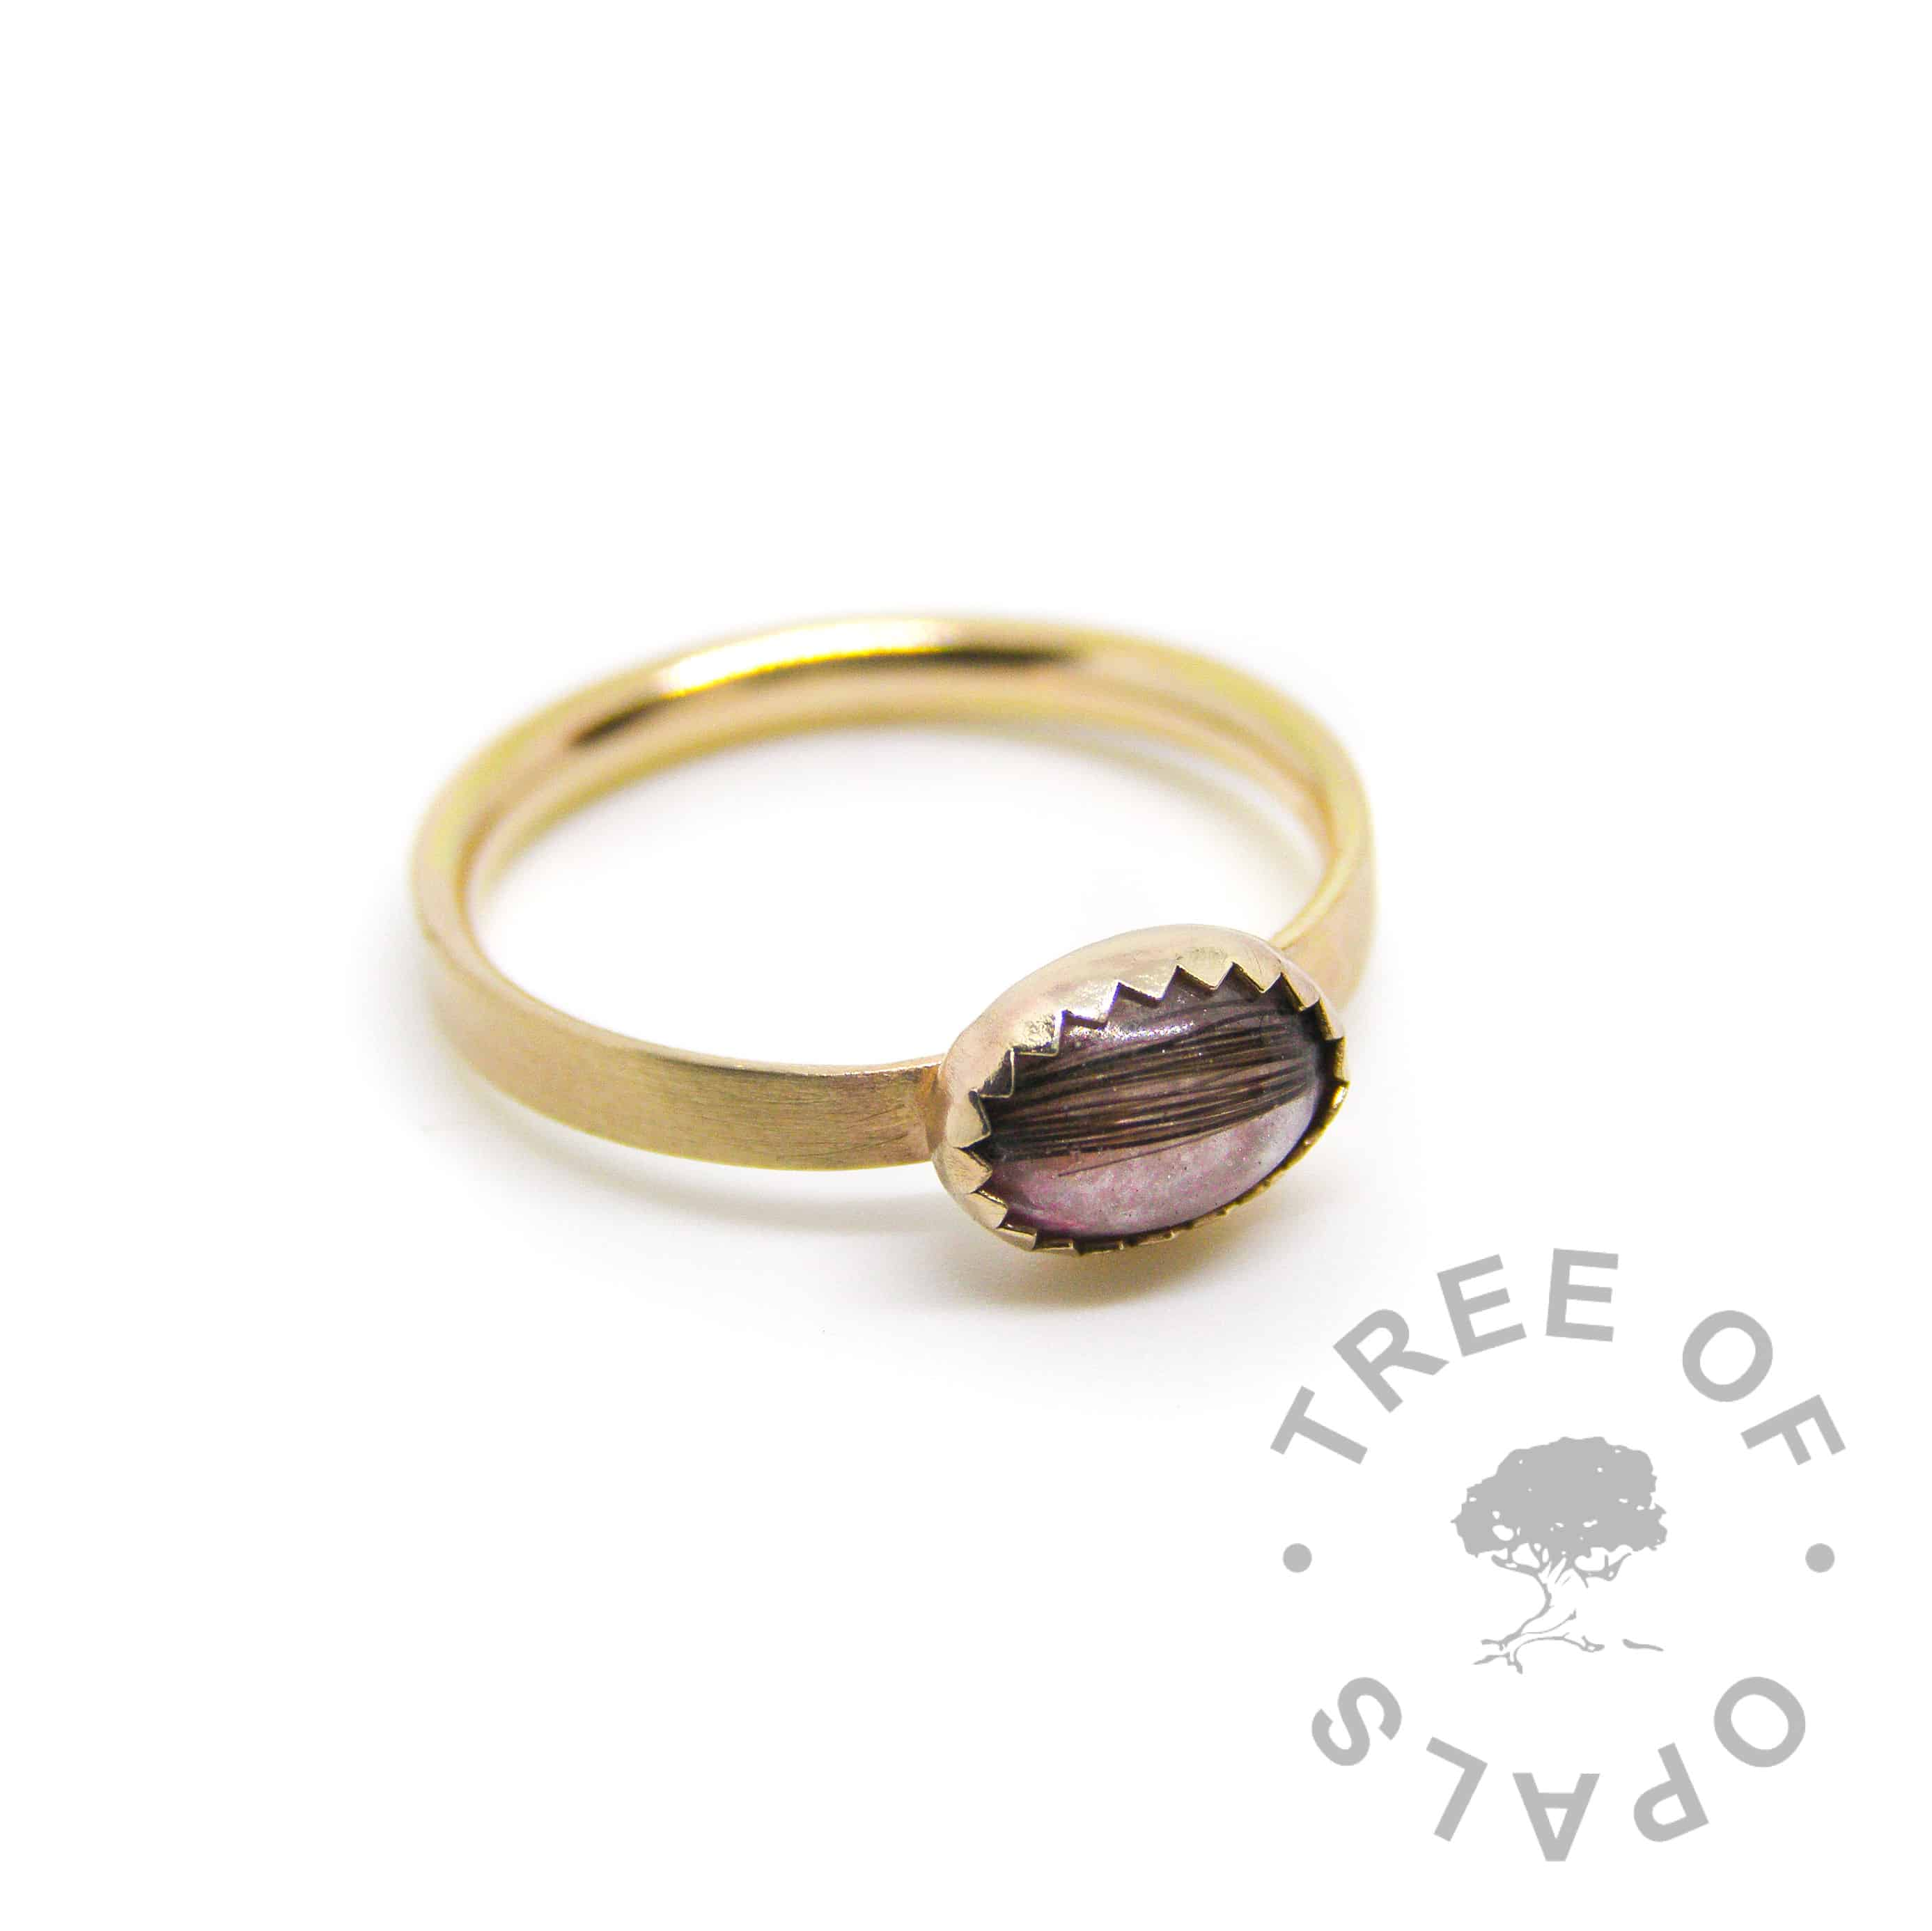 solid gold lock of hair ring brushed 14ct hallmarked yellow gold stacking ring, memorial hair with fairy pink sparkle mix in an 8x6mm cabochon handmade by Tree of Opals